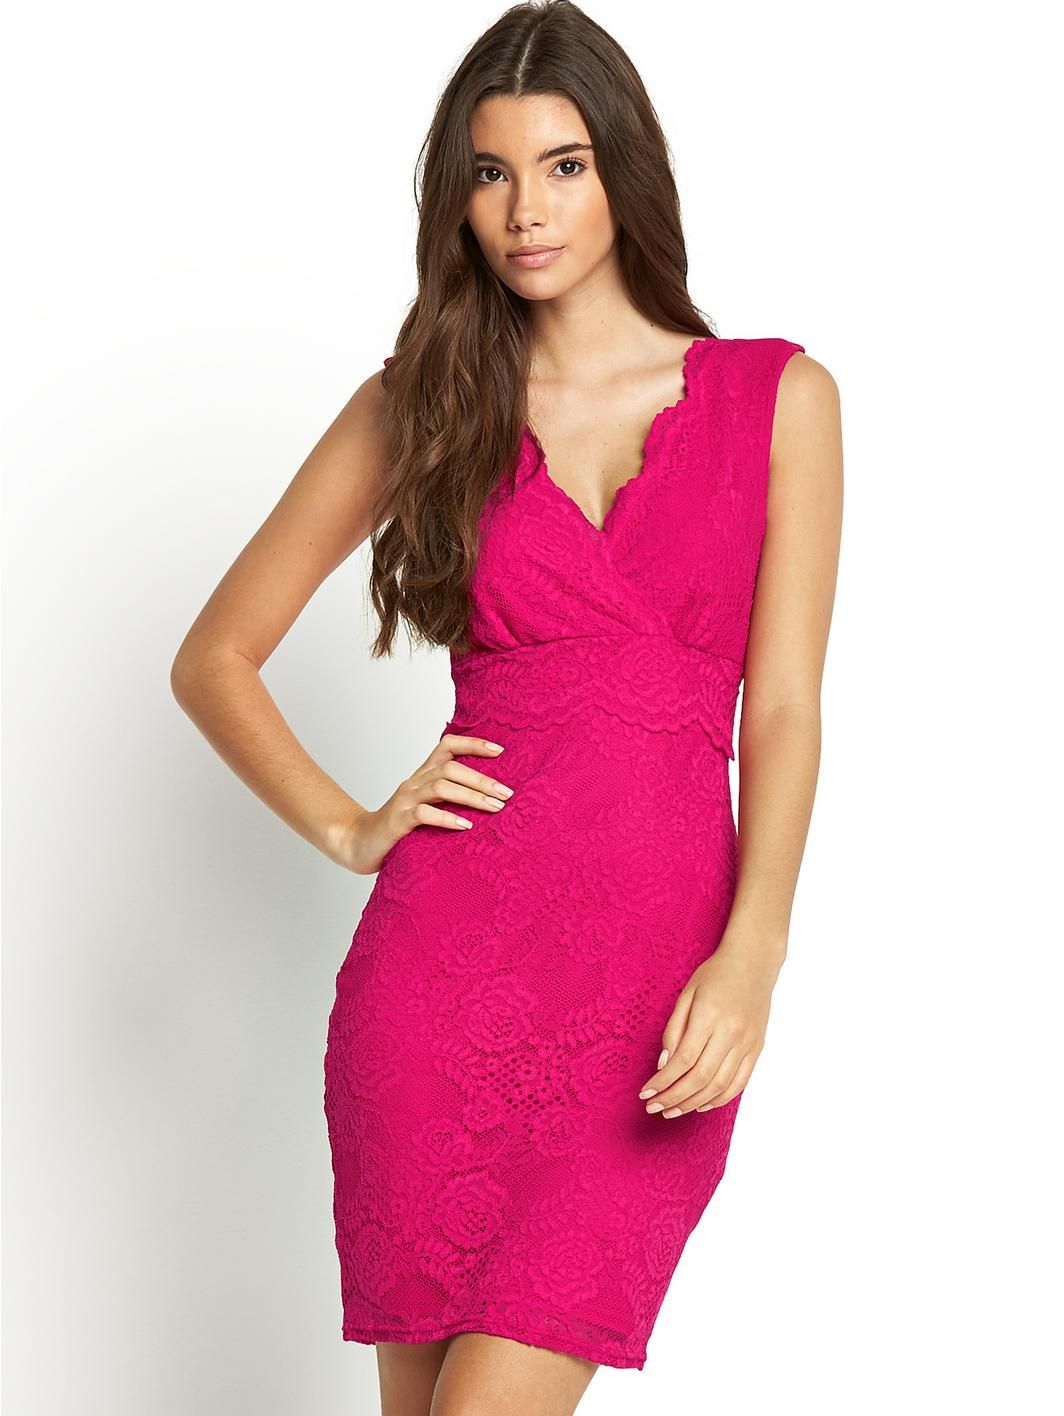 Lace Overlay Bodycon Dress, http://www.very.co.uk/lipsy-lace ...